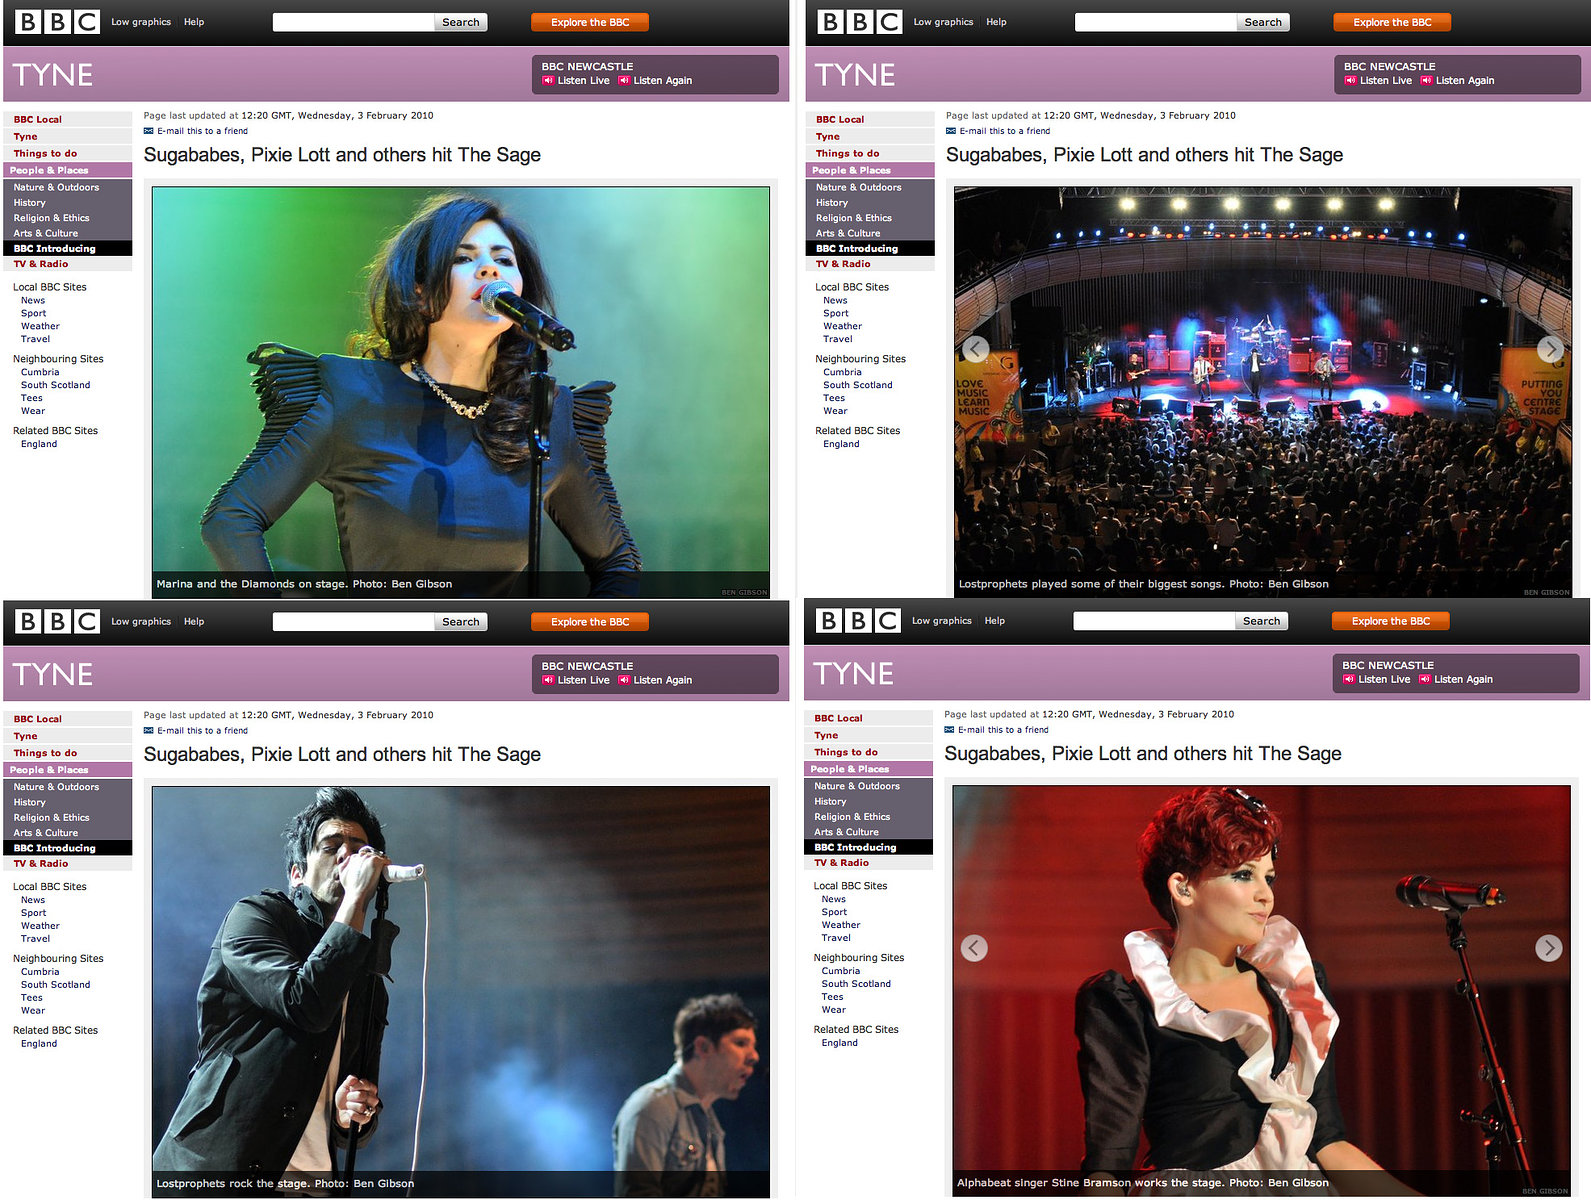 InsideOut Festival // BBC Tyne website 2010